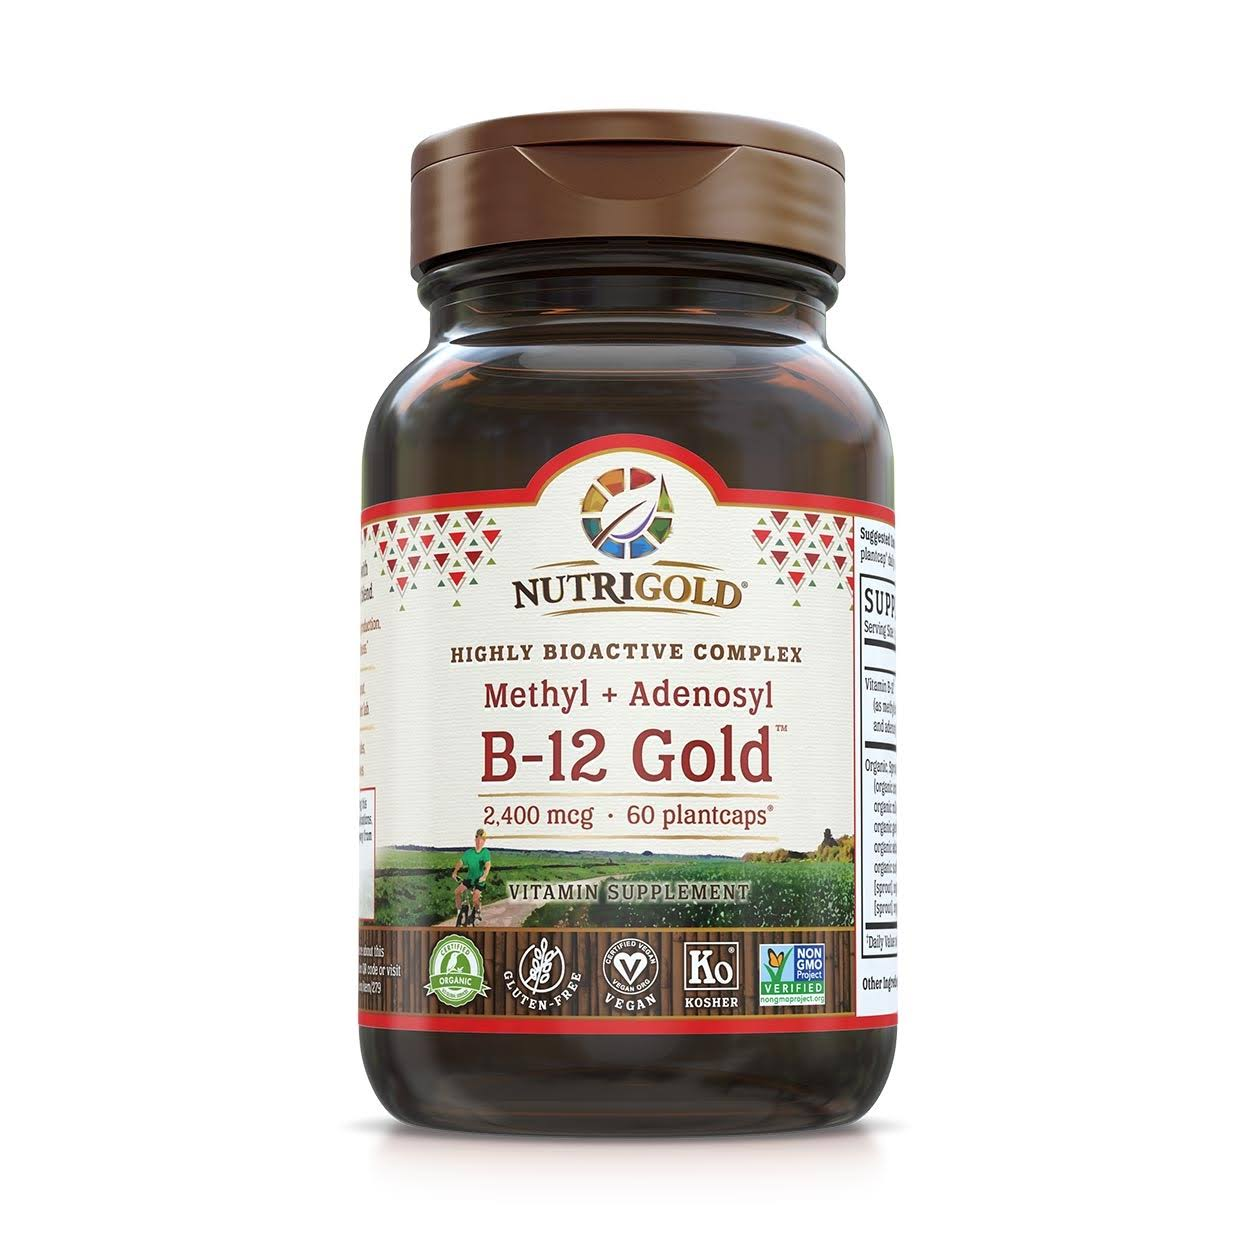 NutriGold Whole Food Vitamin B12 Gold - 2500mcg, 120ct